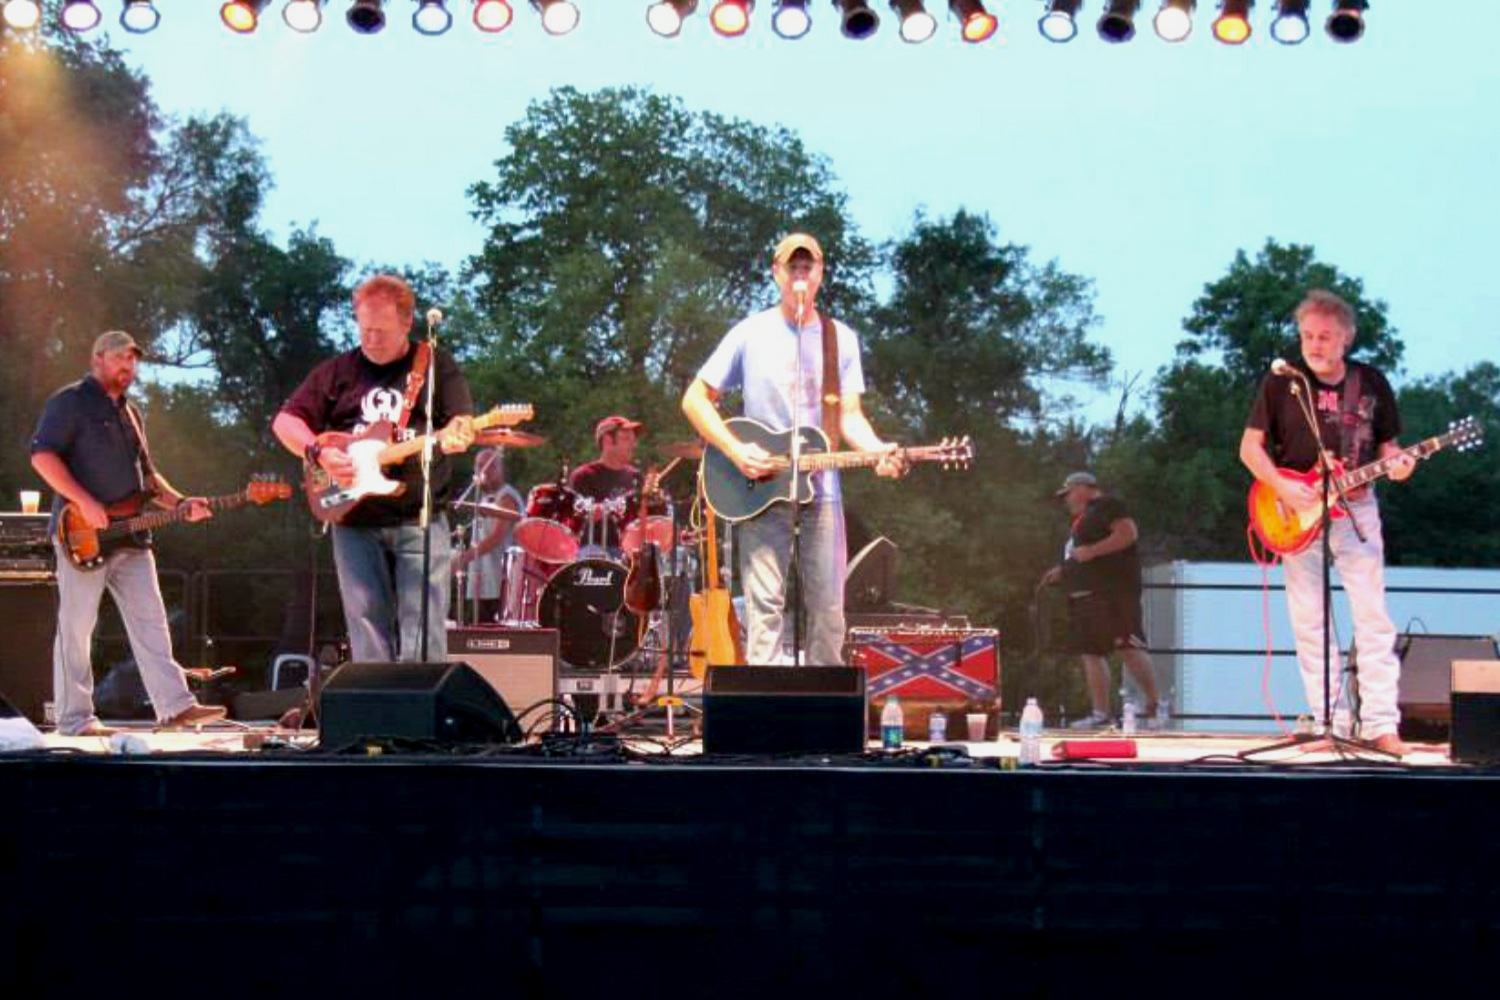 Live Music featuring Cactus Flats at 